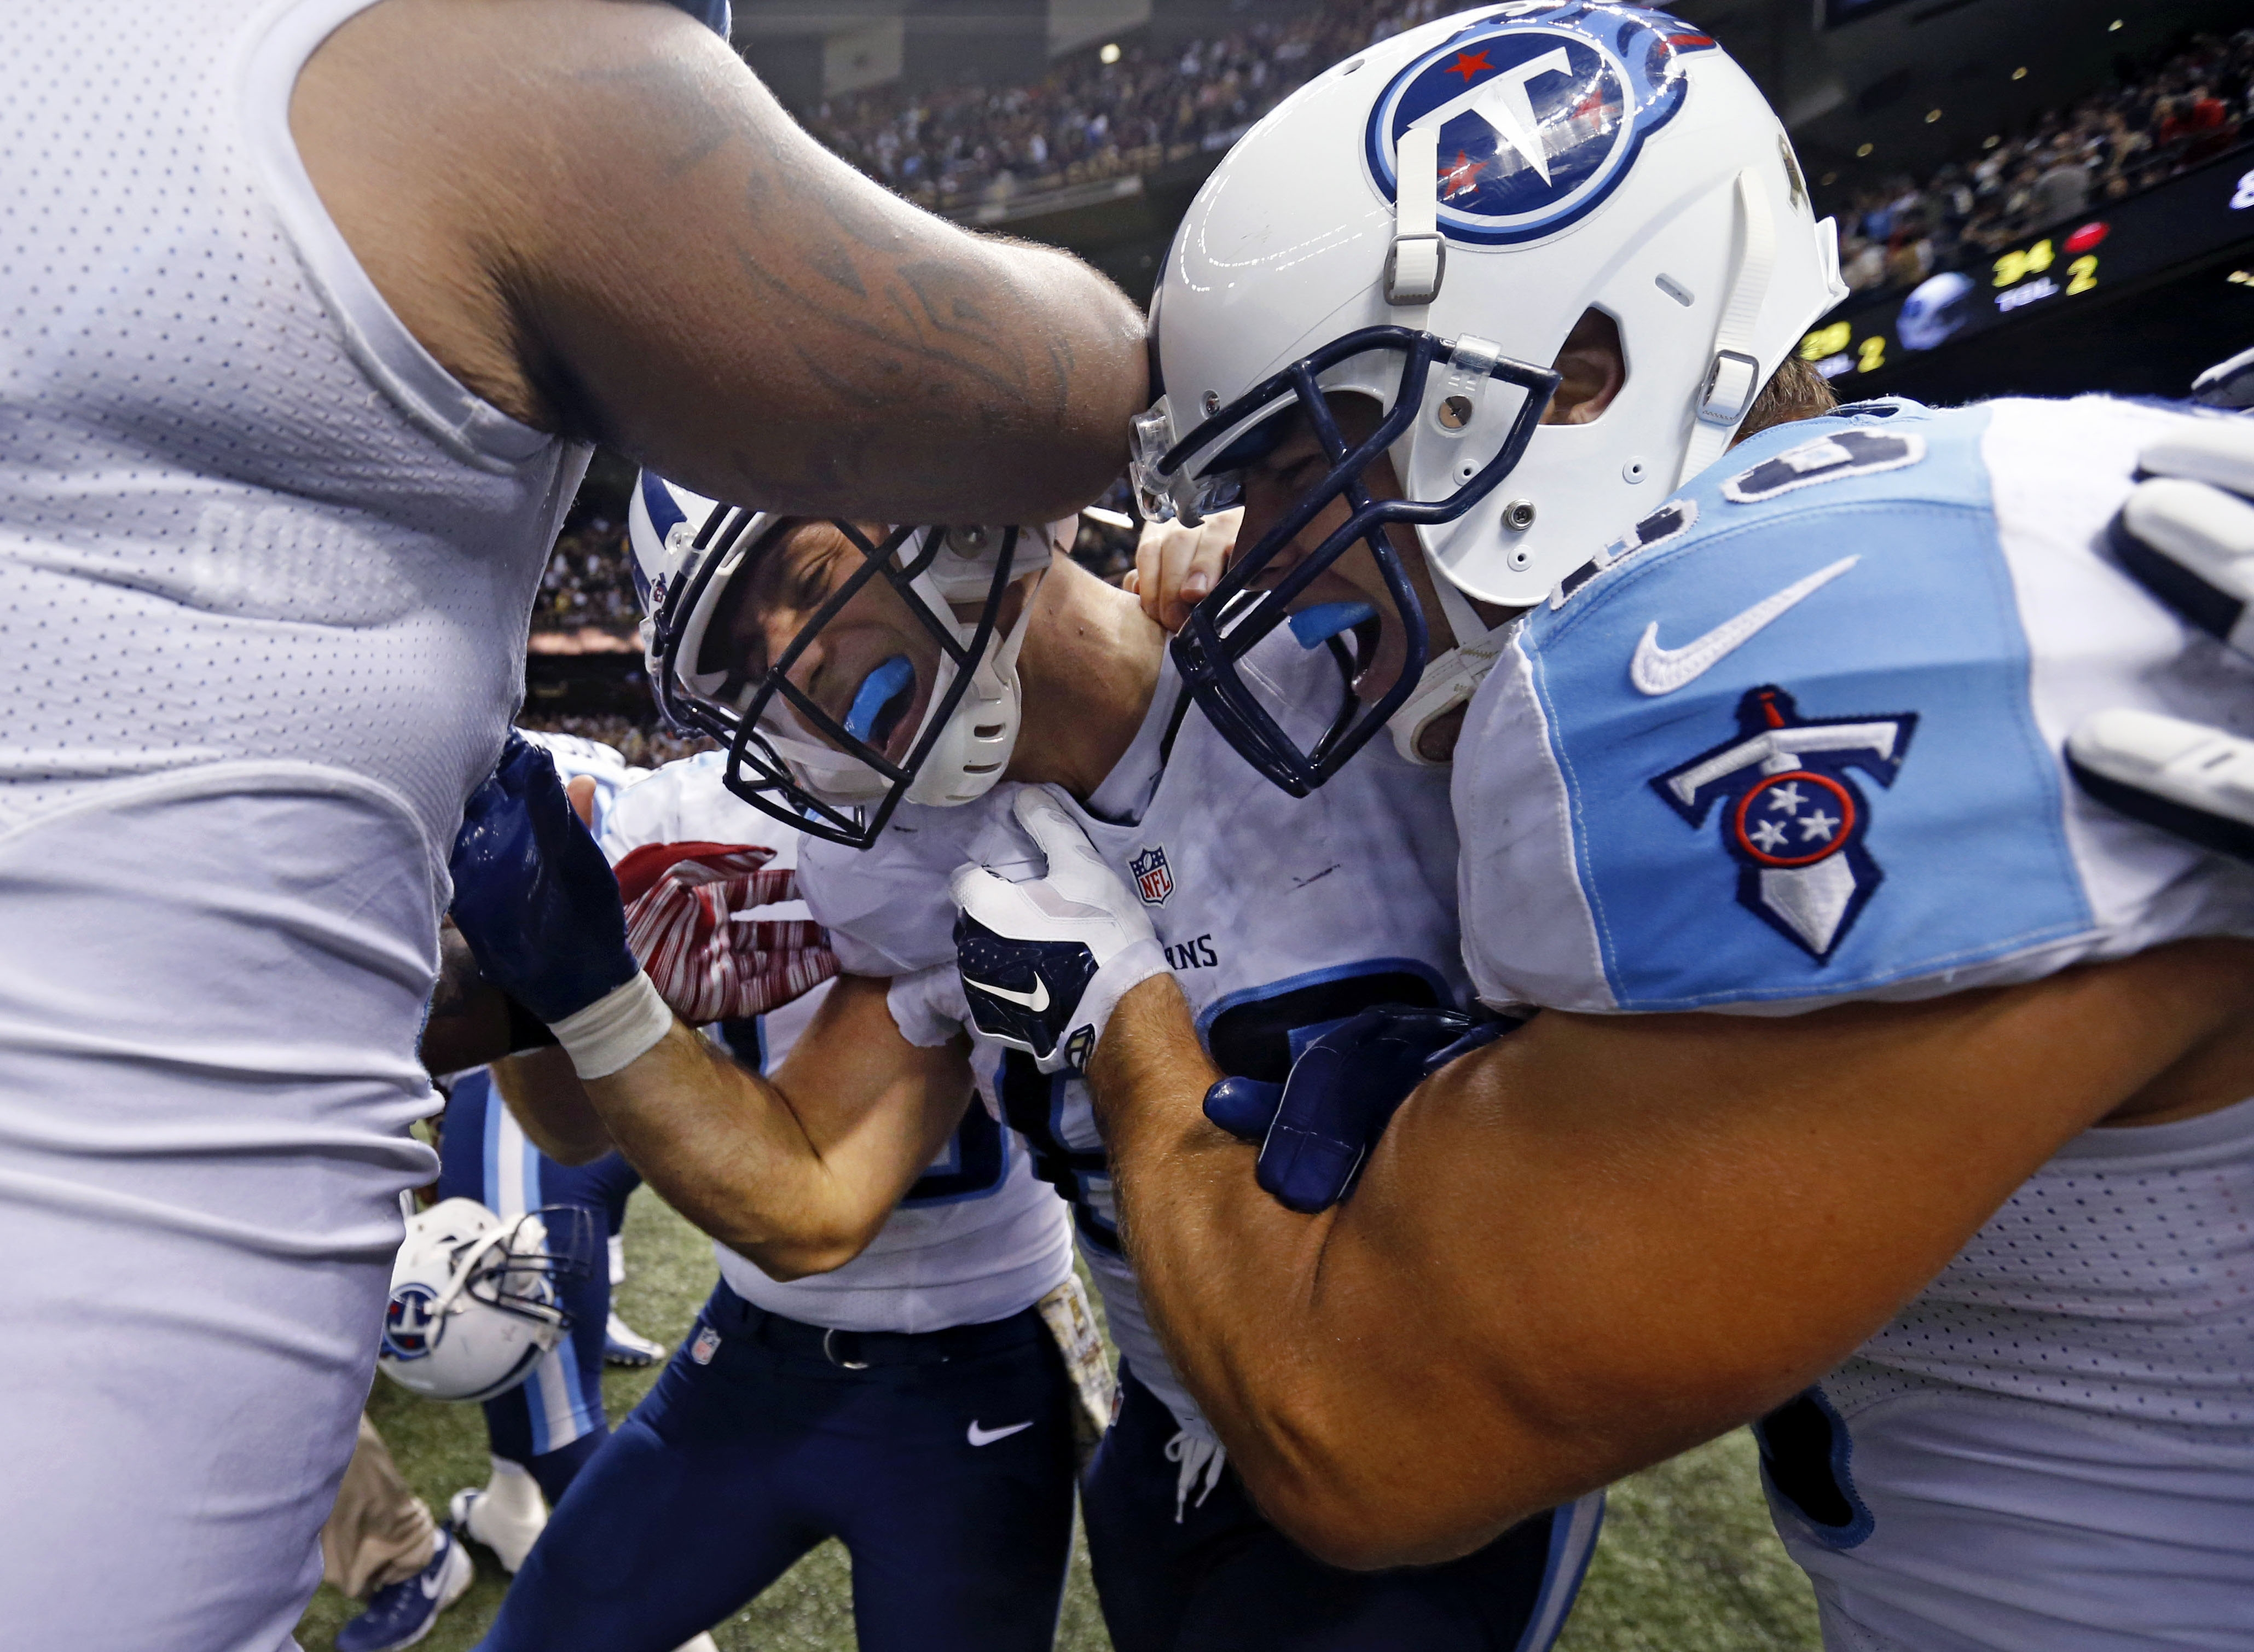 Tennessee Titans tight end Anthony Fasano is mobbed by teammates after catching the game wining touchdown during overtime of an NFL football game against the New Orleans Saints in New Orleans, Sunday, Nov. 8, 2015. The Titans won 34-28. (AP Photo/Jonathan